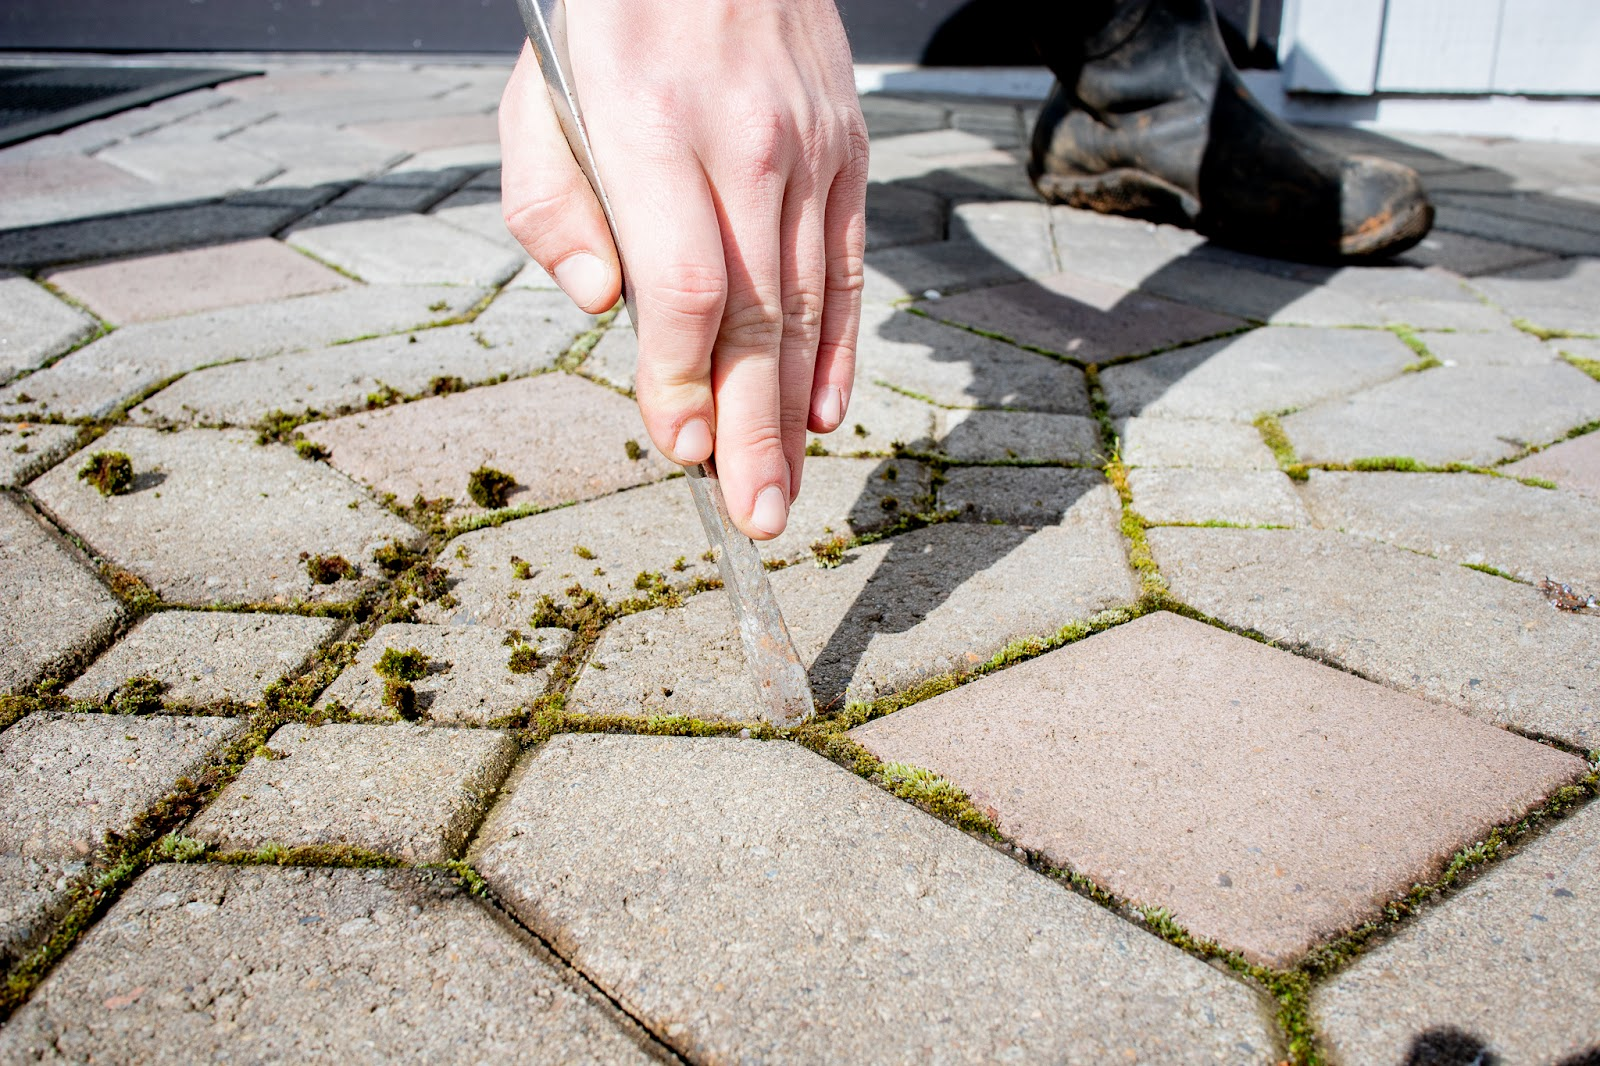 Hand holding screwdriver scraping moss out of paving stone joints.